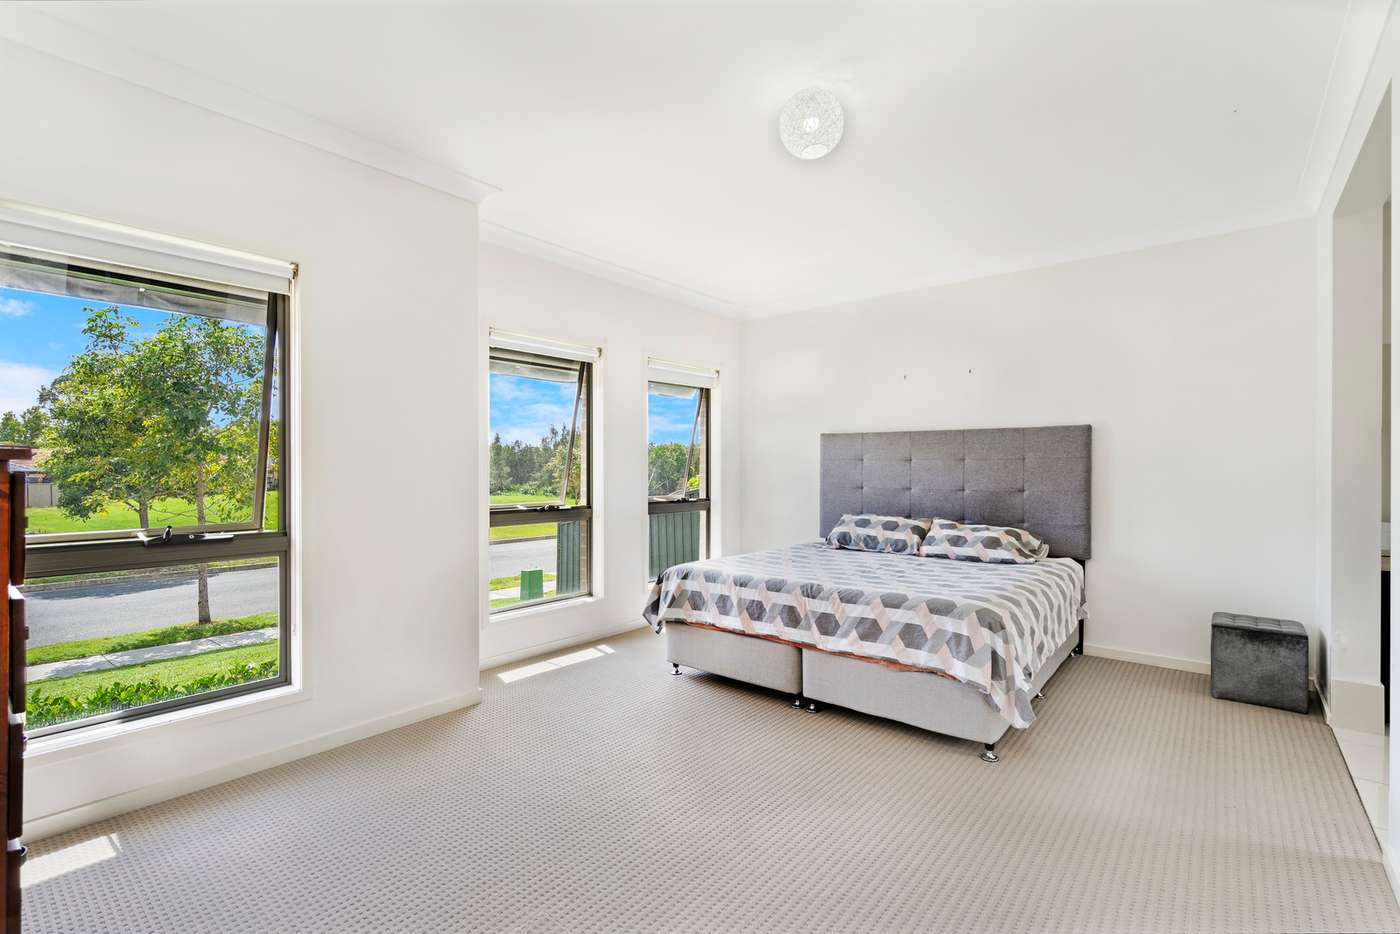 Sixth view of Homely house listing, 9 Sunrise Court, Merrimac QLD 4226